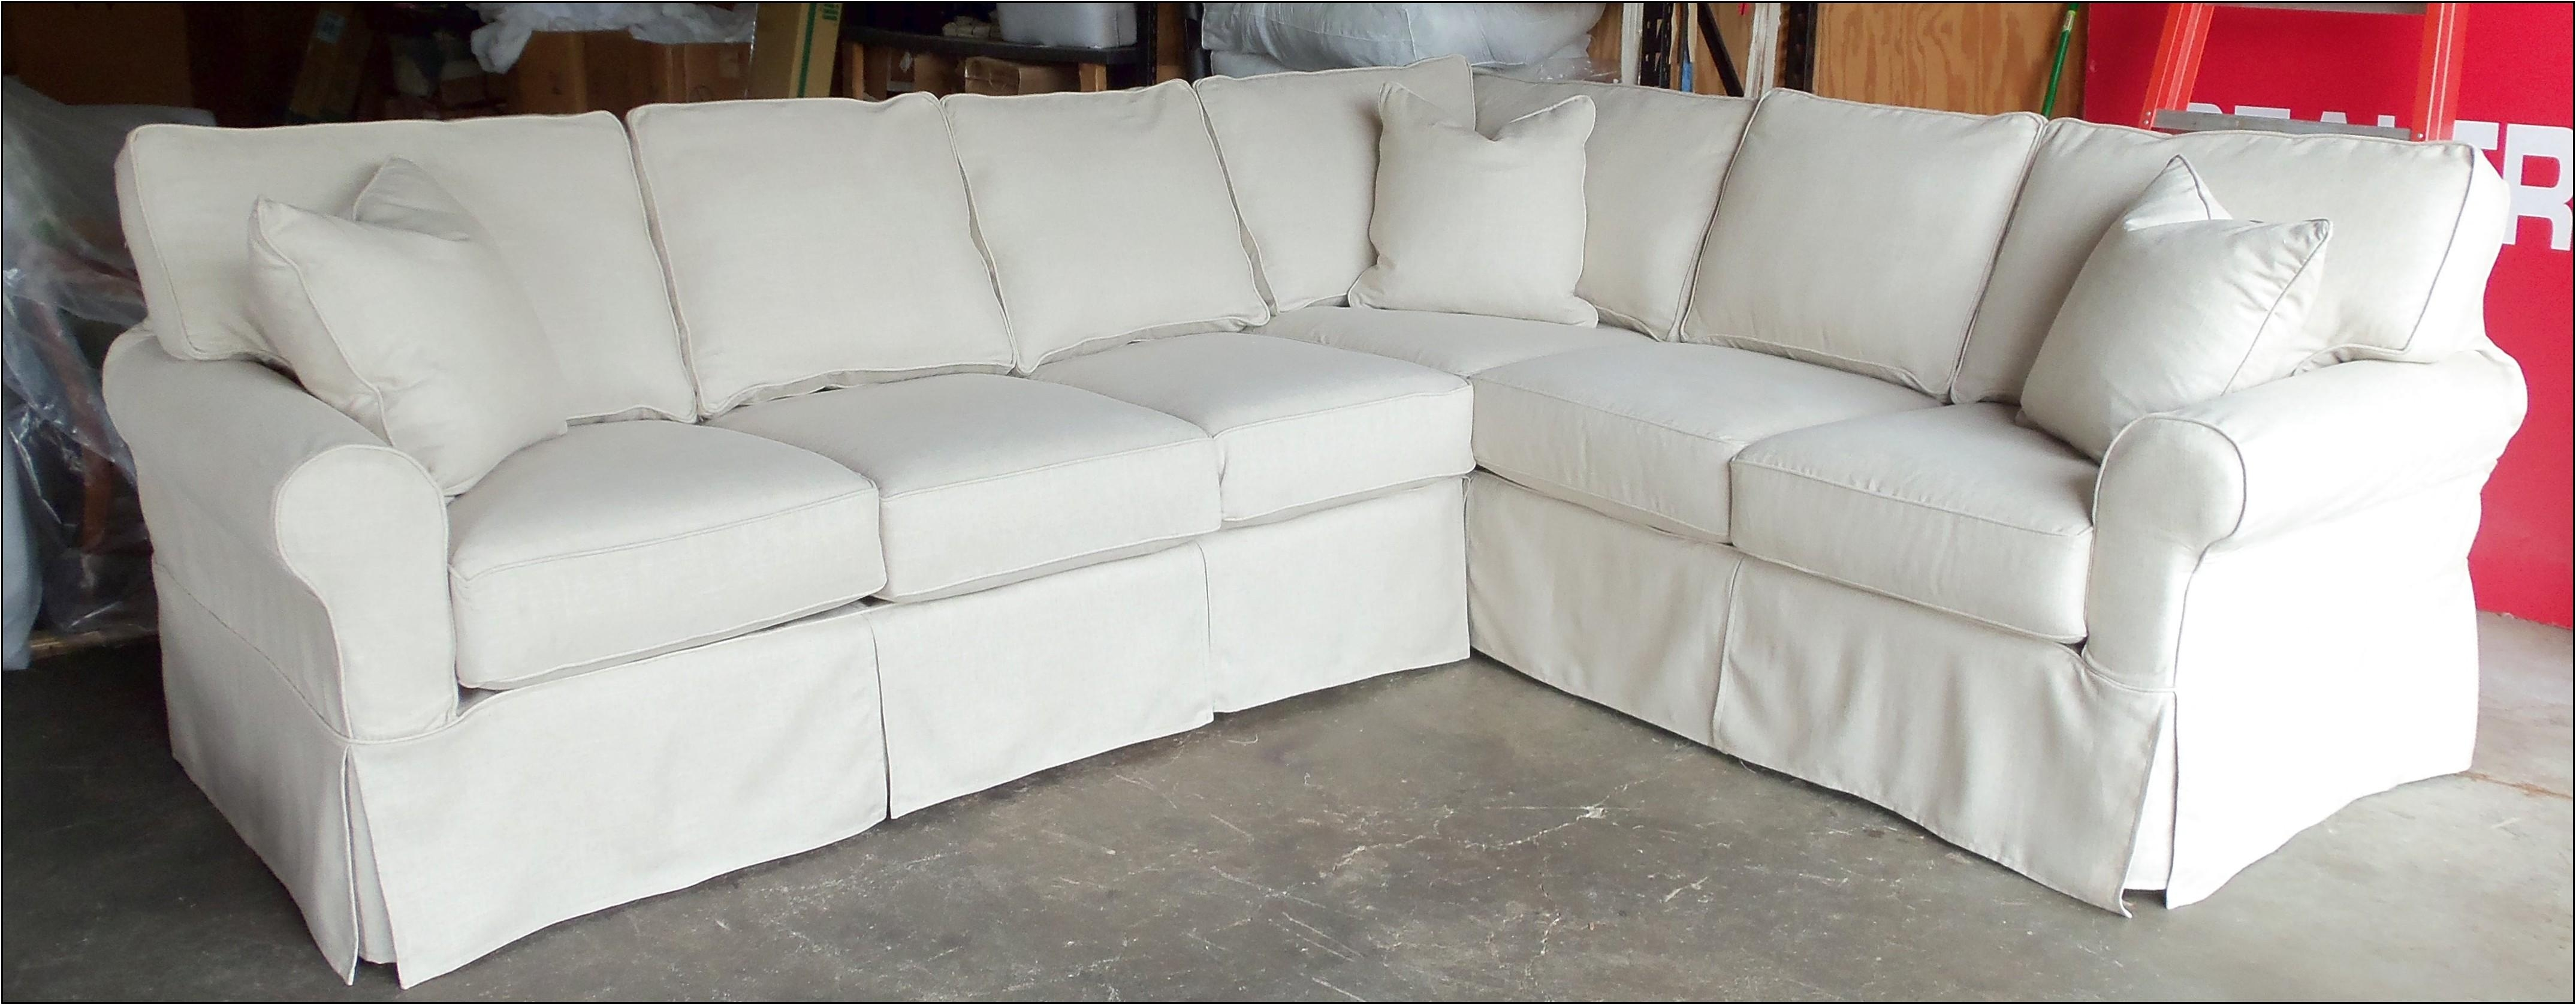 Furniture: Couch Covers At Walmart To Make Your Furniture Stylish Inside Sofas Cover For Sectional Sofas (View 3 of 20)